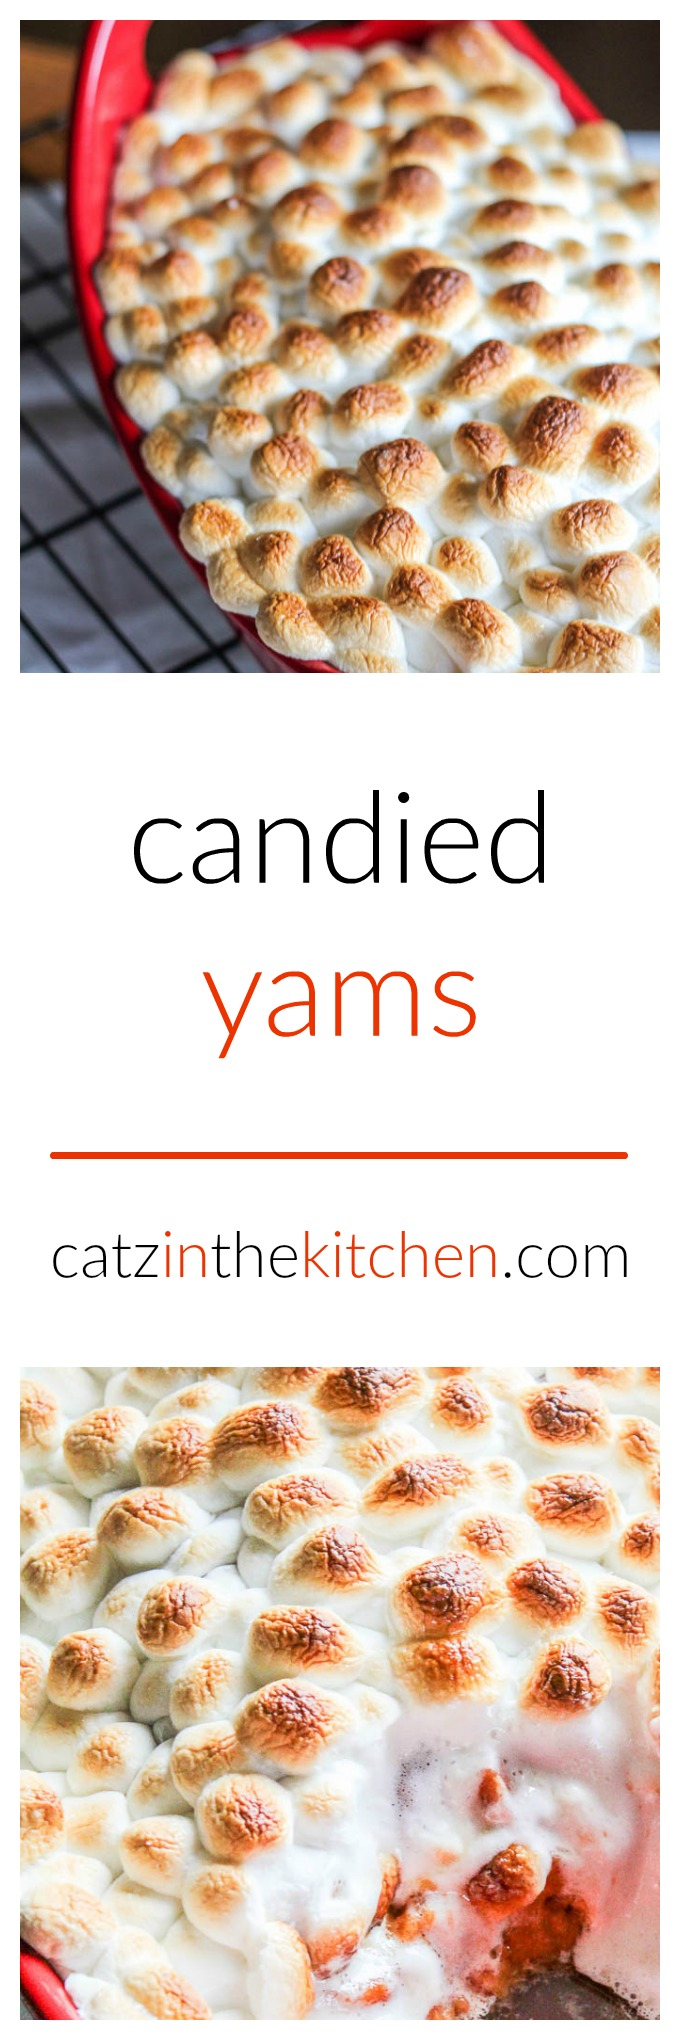 Candied Yams | Catz in the Kitchen | catzinthekitchen.com | #holidays #recipe #yams #Thanksgiving